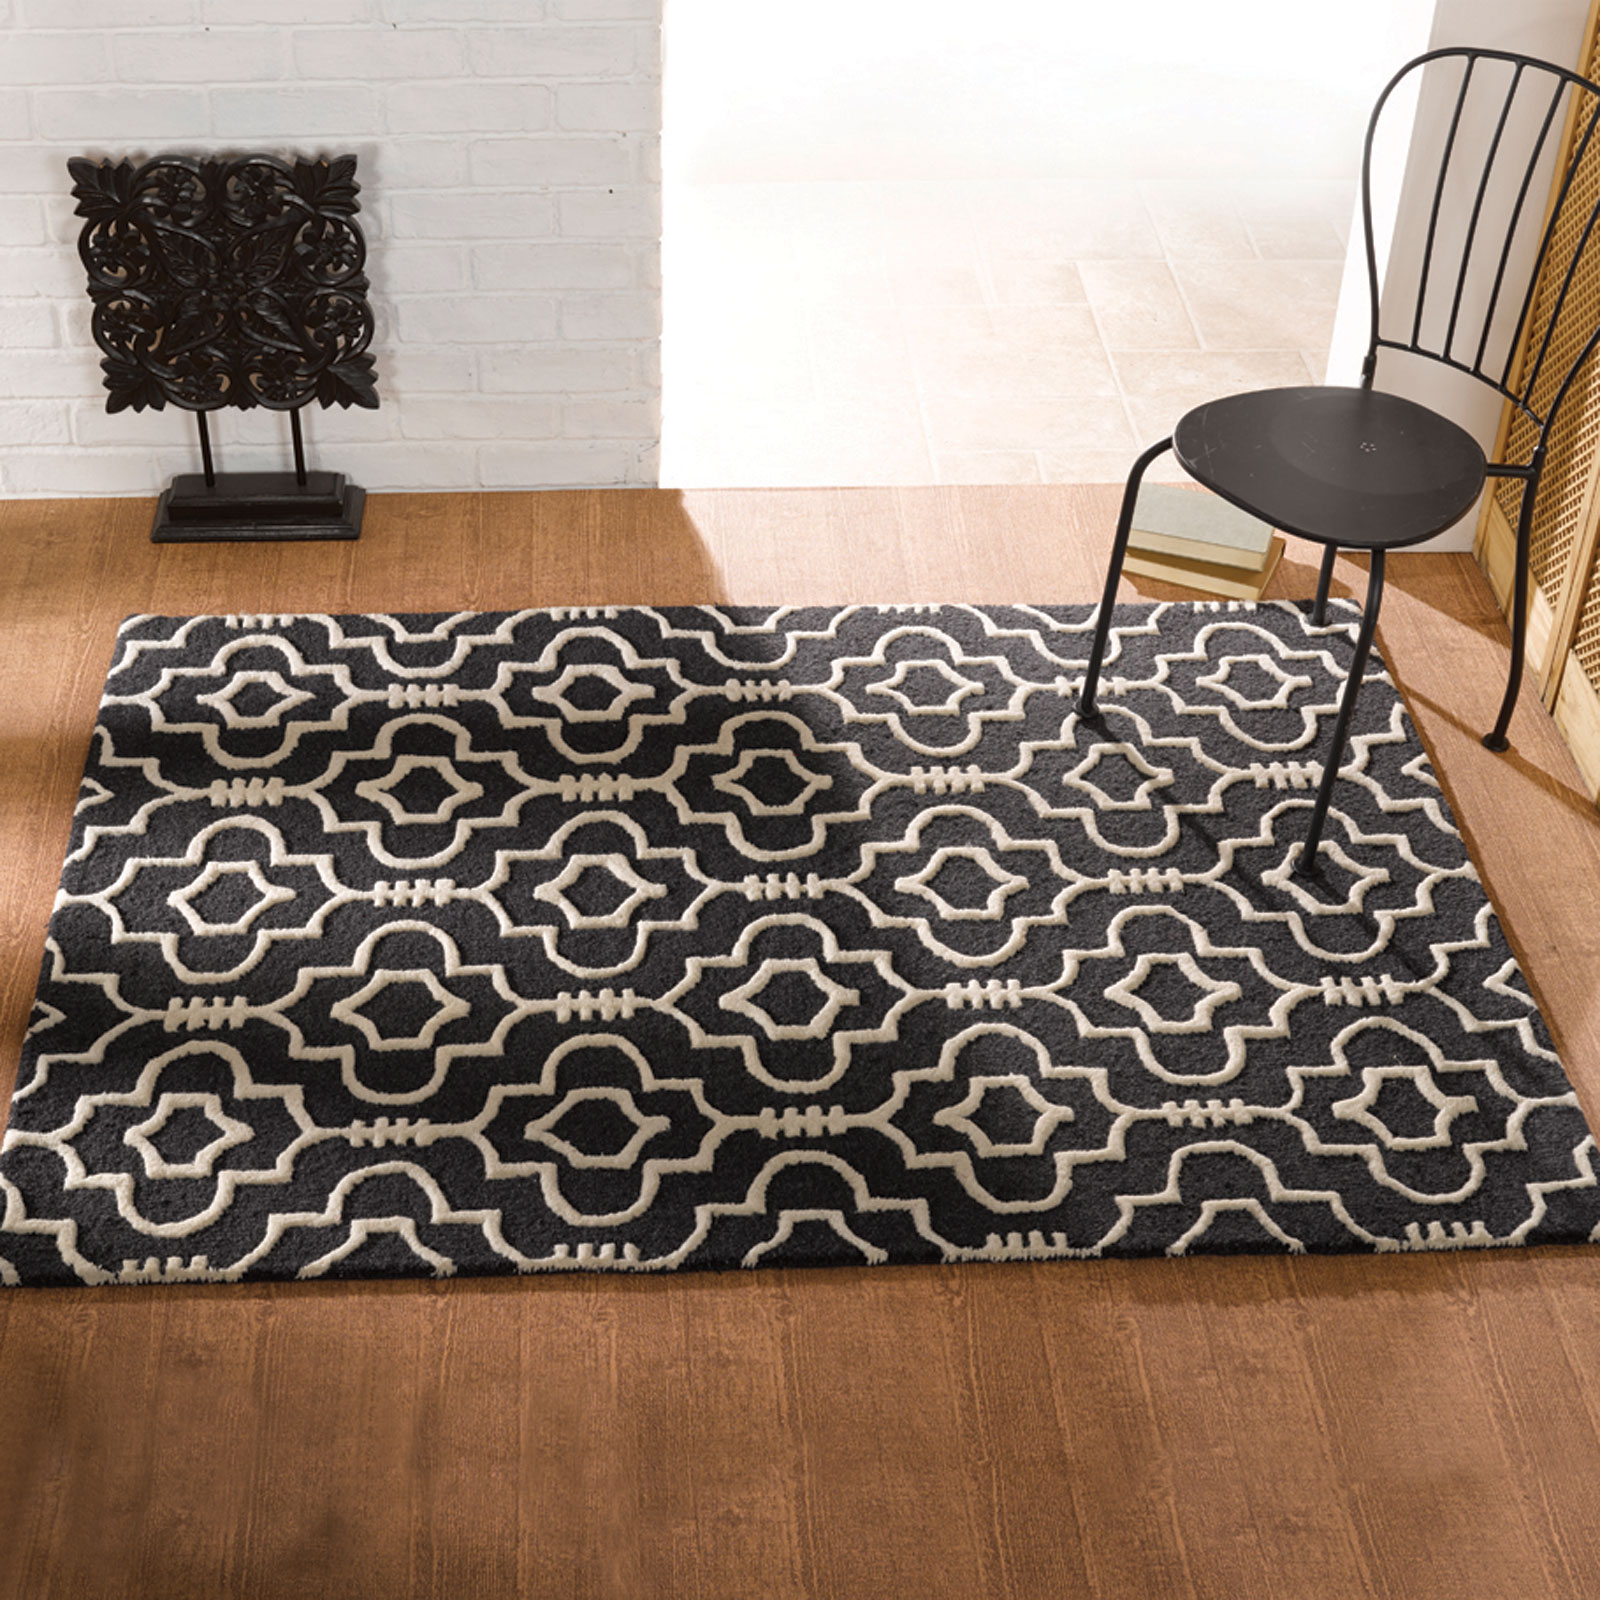 Moorish Morocco Rugs In Charcoal